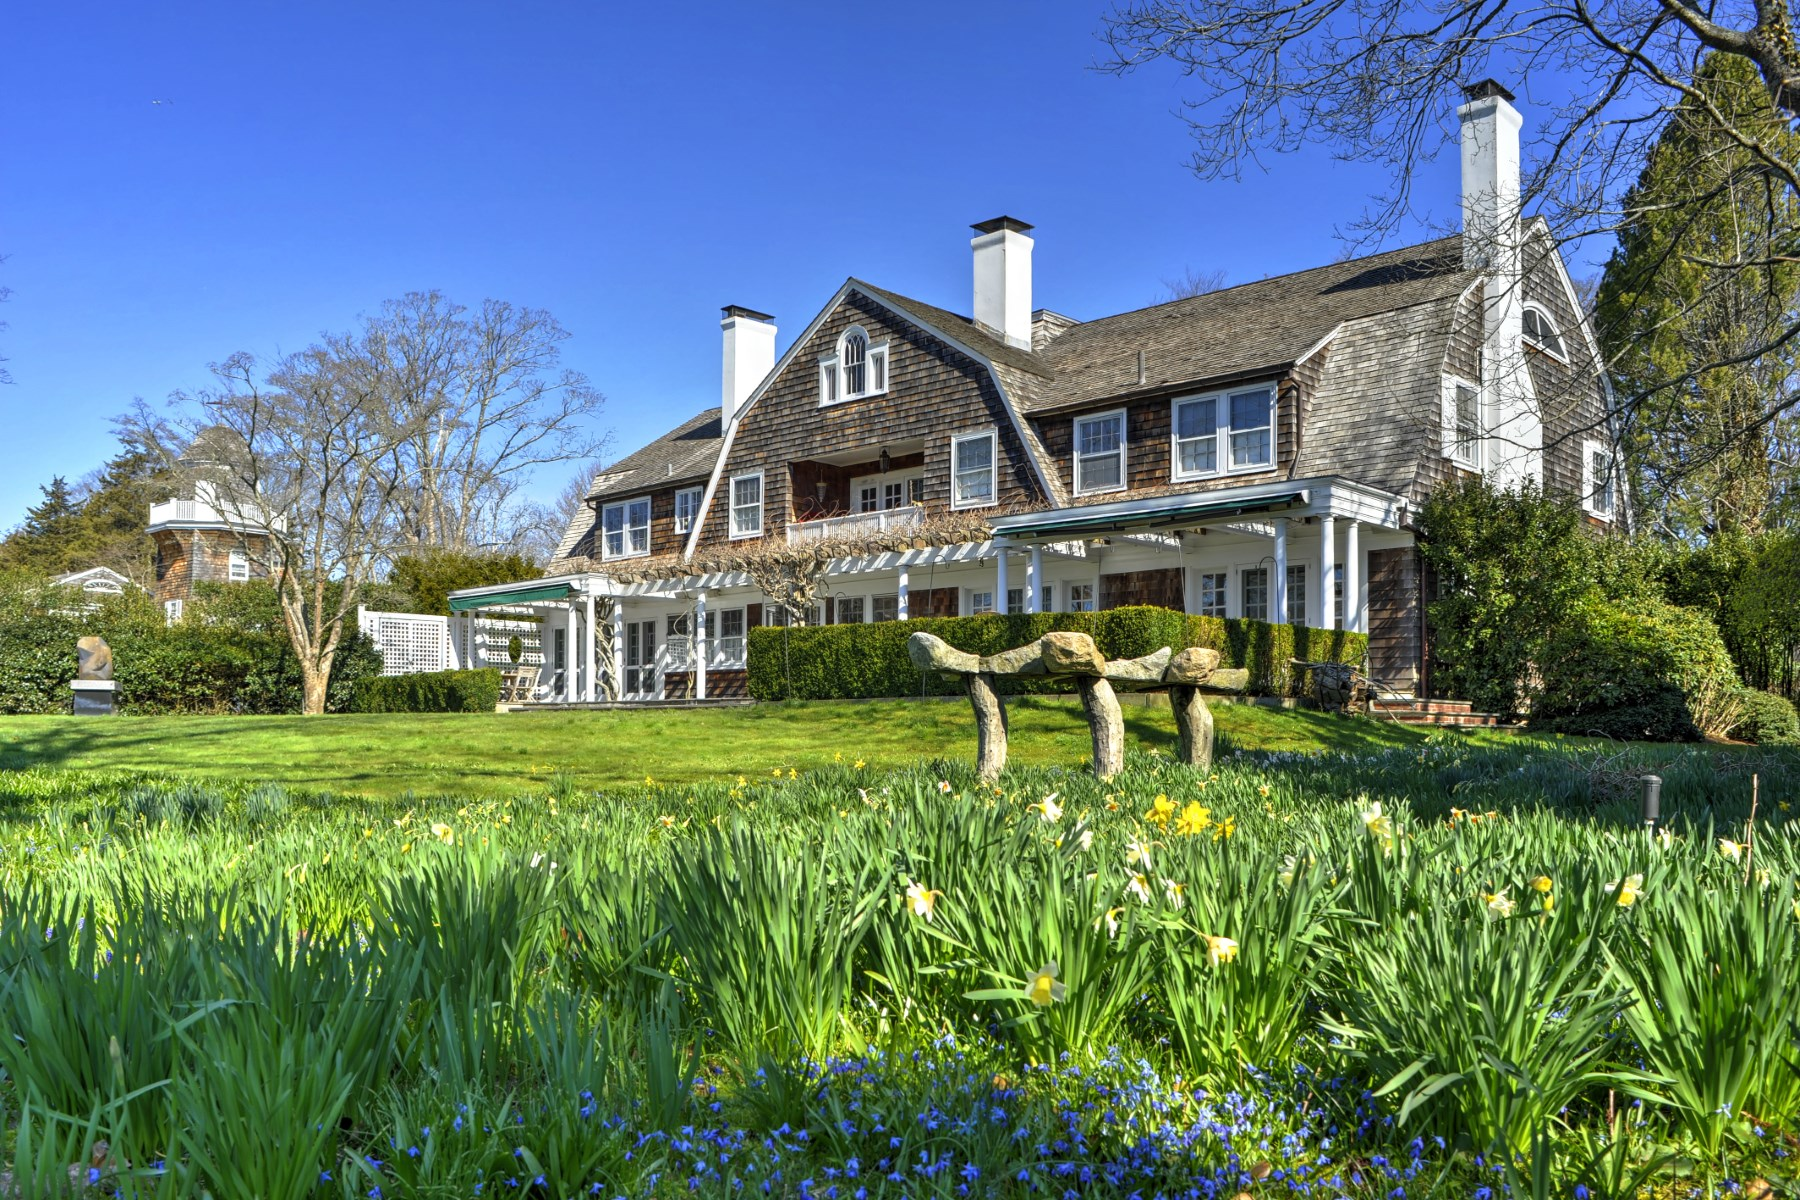 Casa Unifamiliar por un Alquiler en Iconic East Hampton Estate Compound 55 And 63 Huntting Lane East Hampton Village, East Hampton, Nueva York, 11937 Estados Unidos